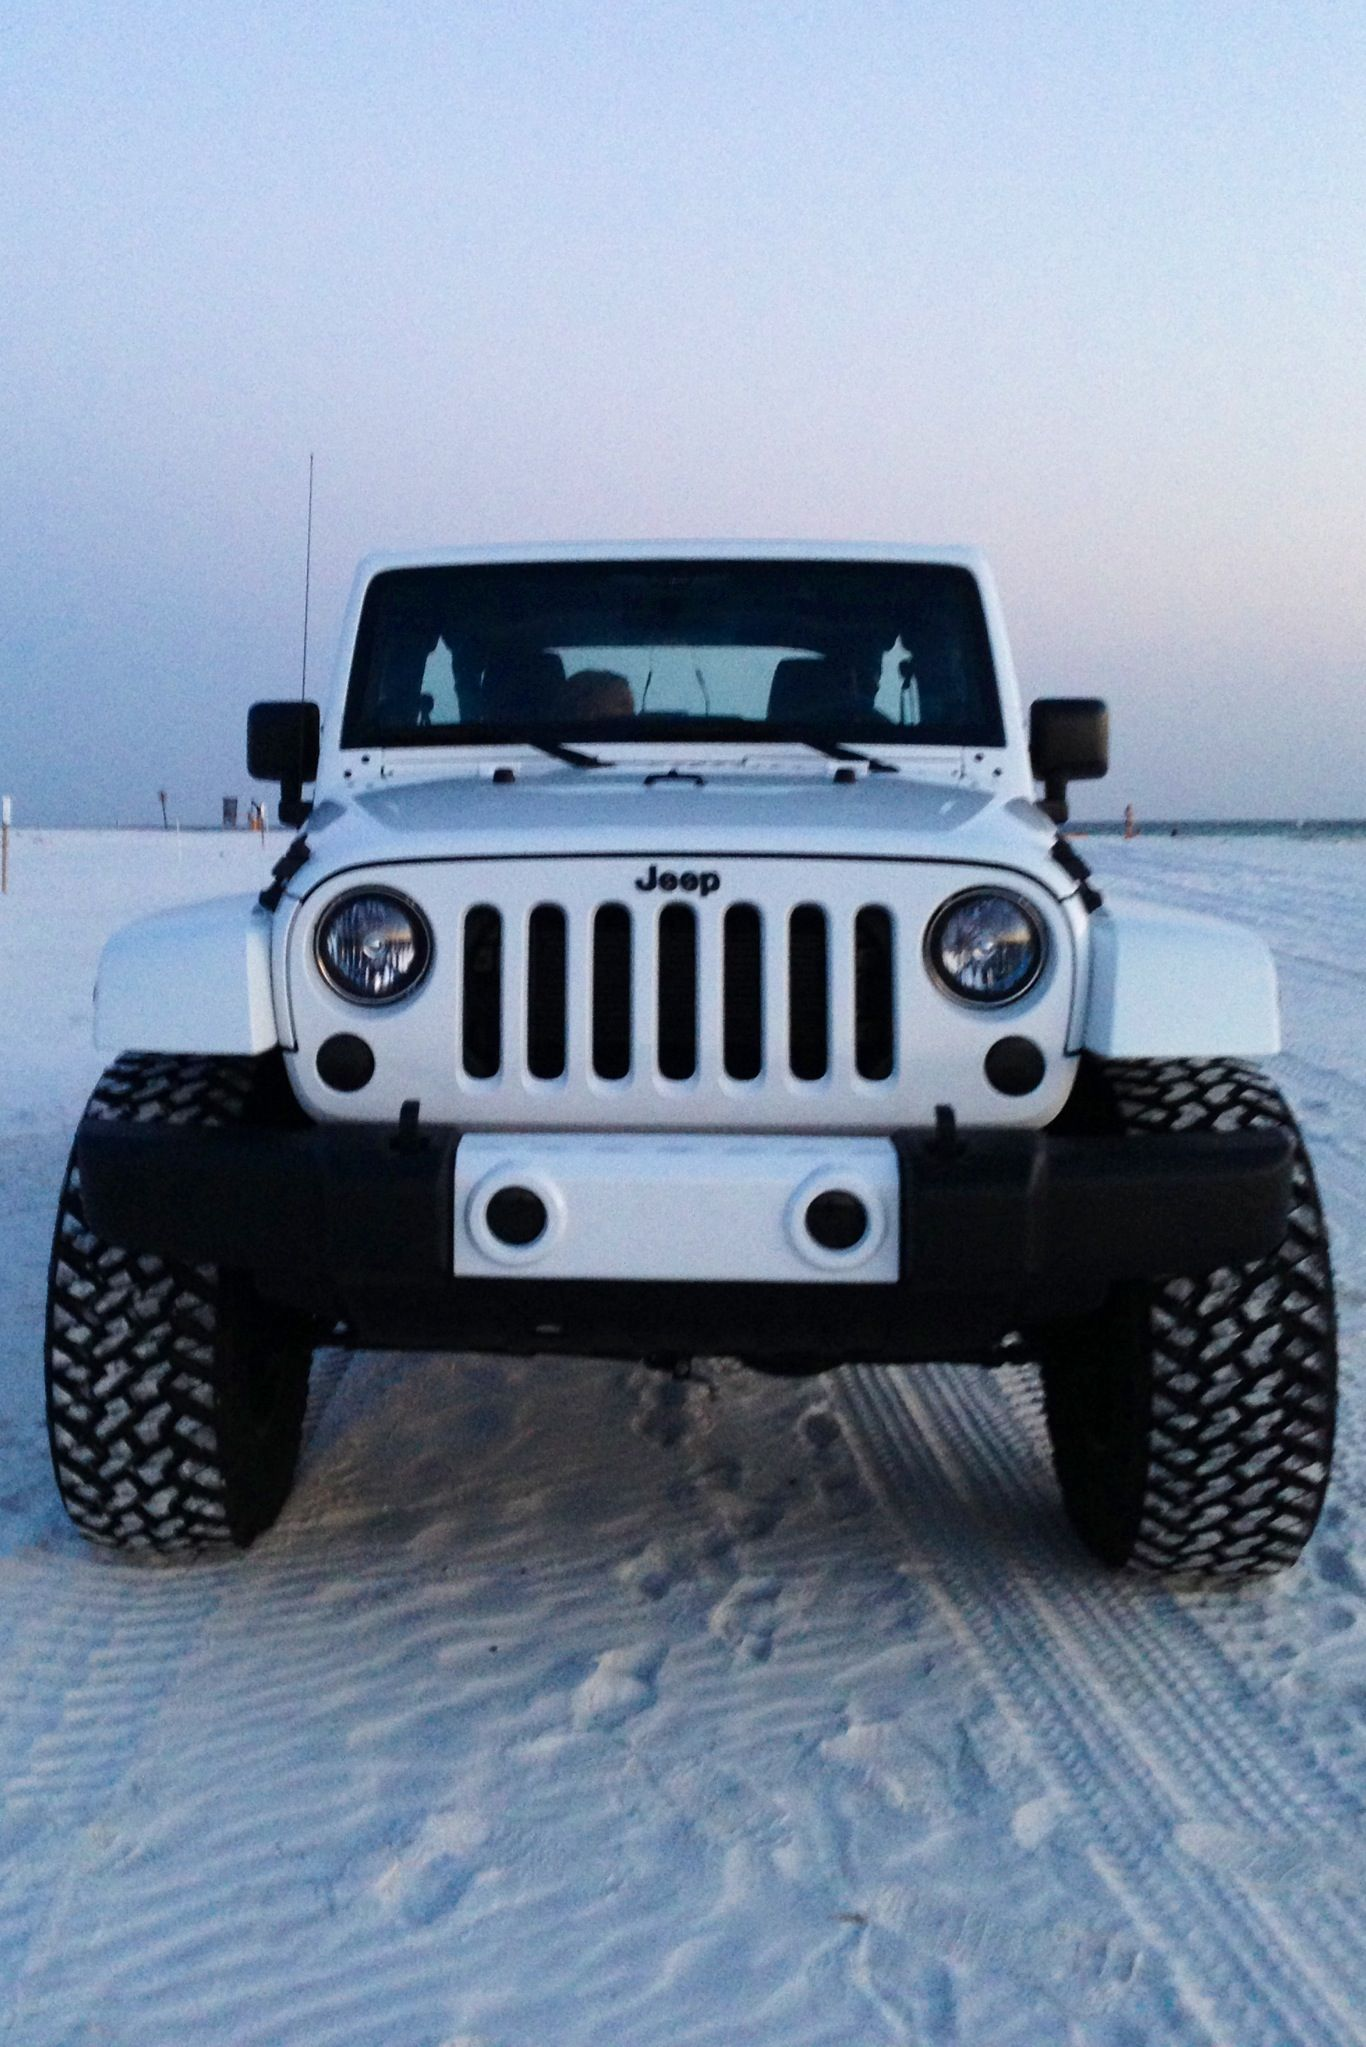 2012 Jeep Wrangler Unlimited Sahara With Altitude Package Dream